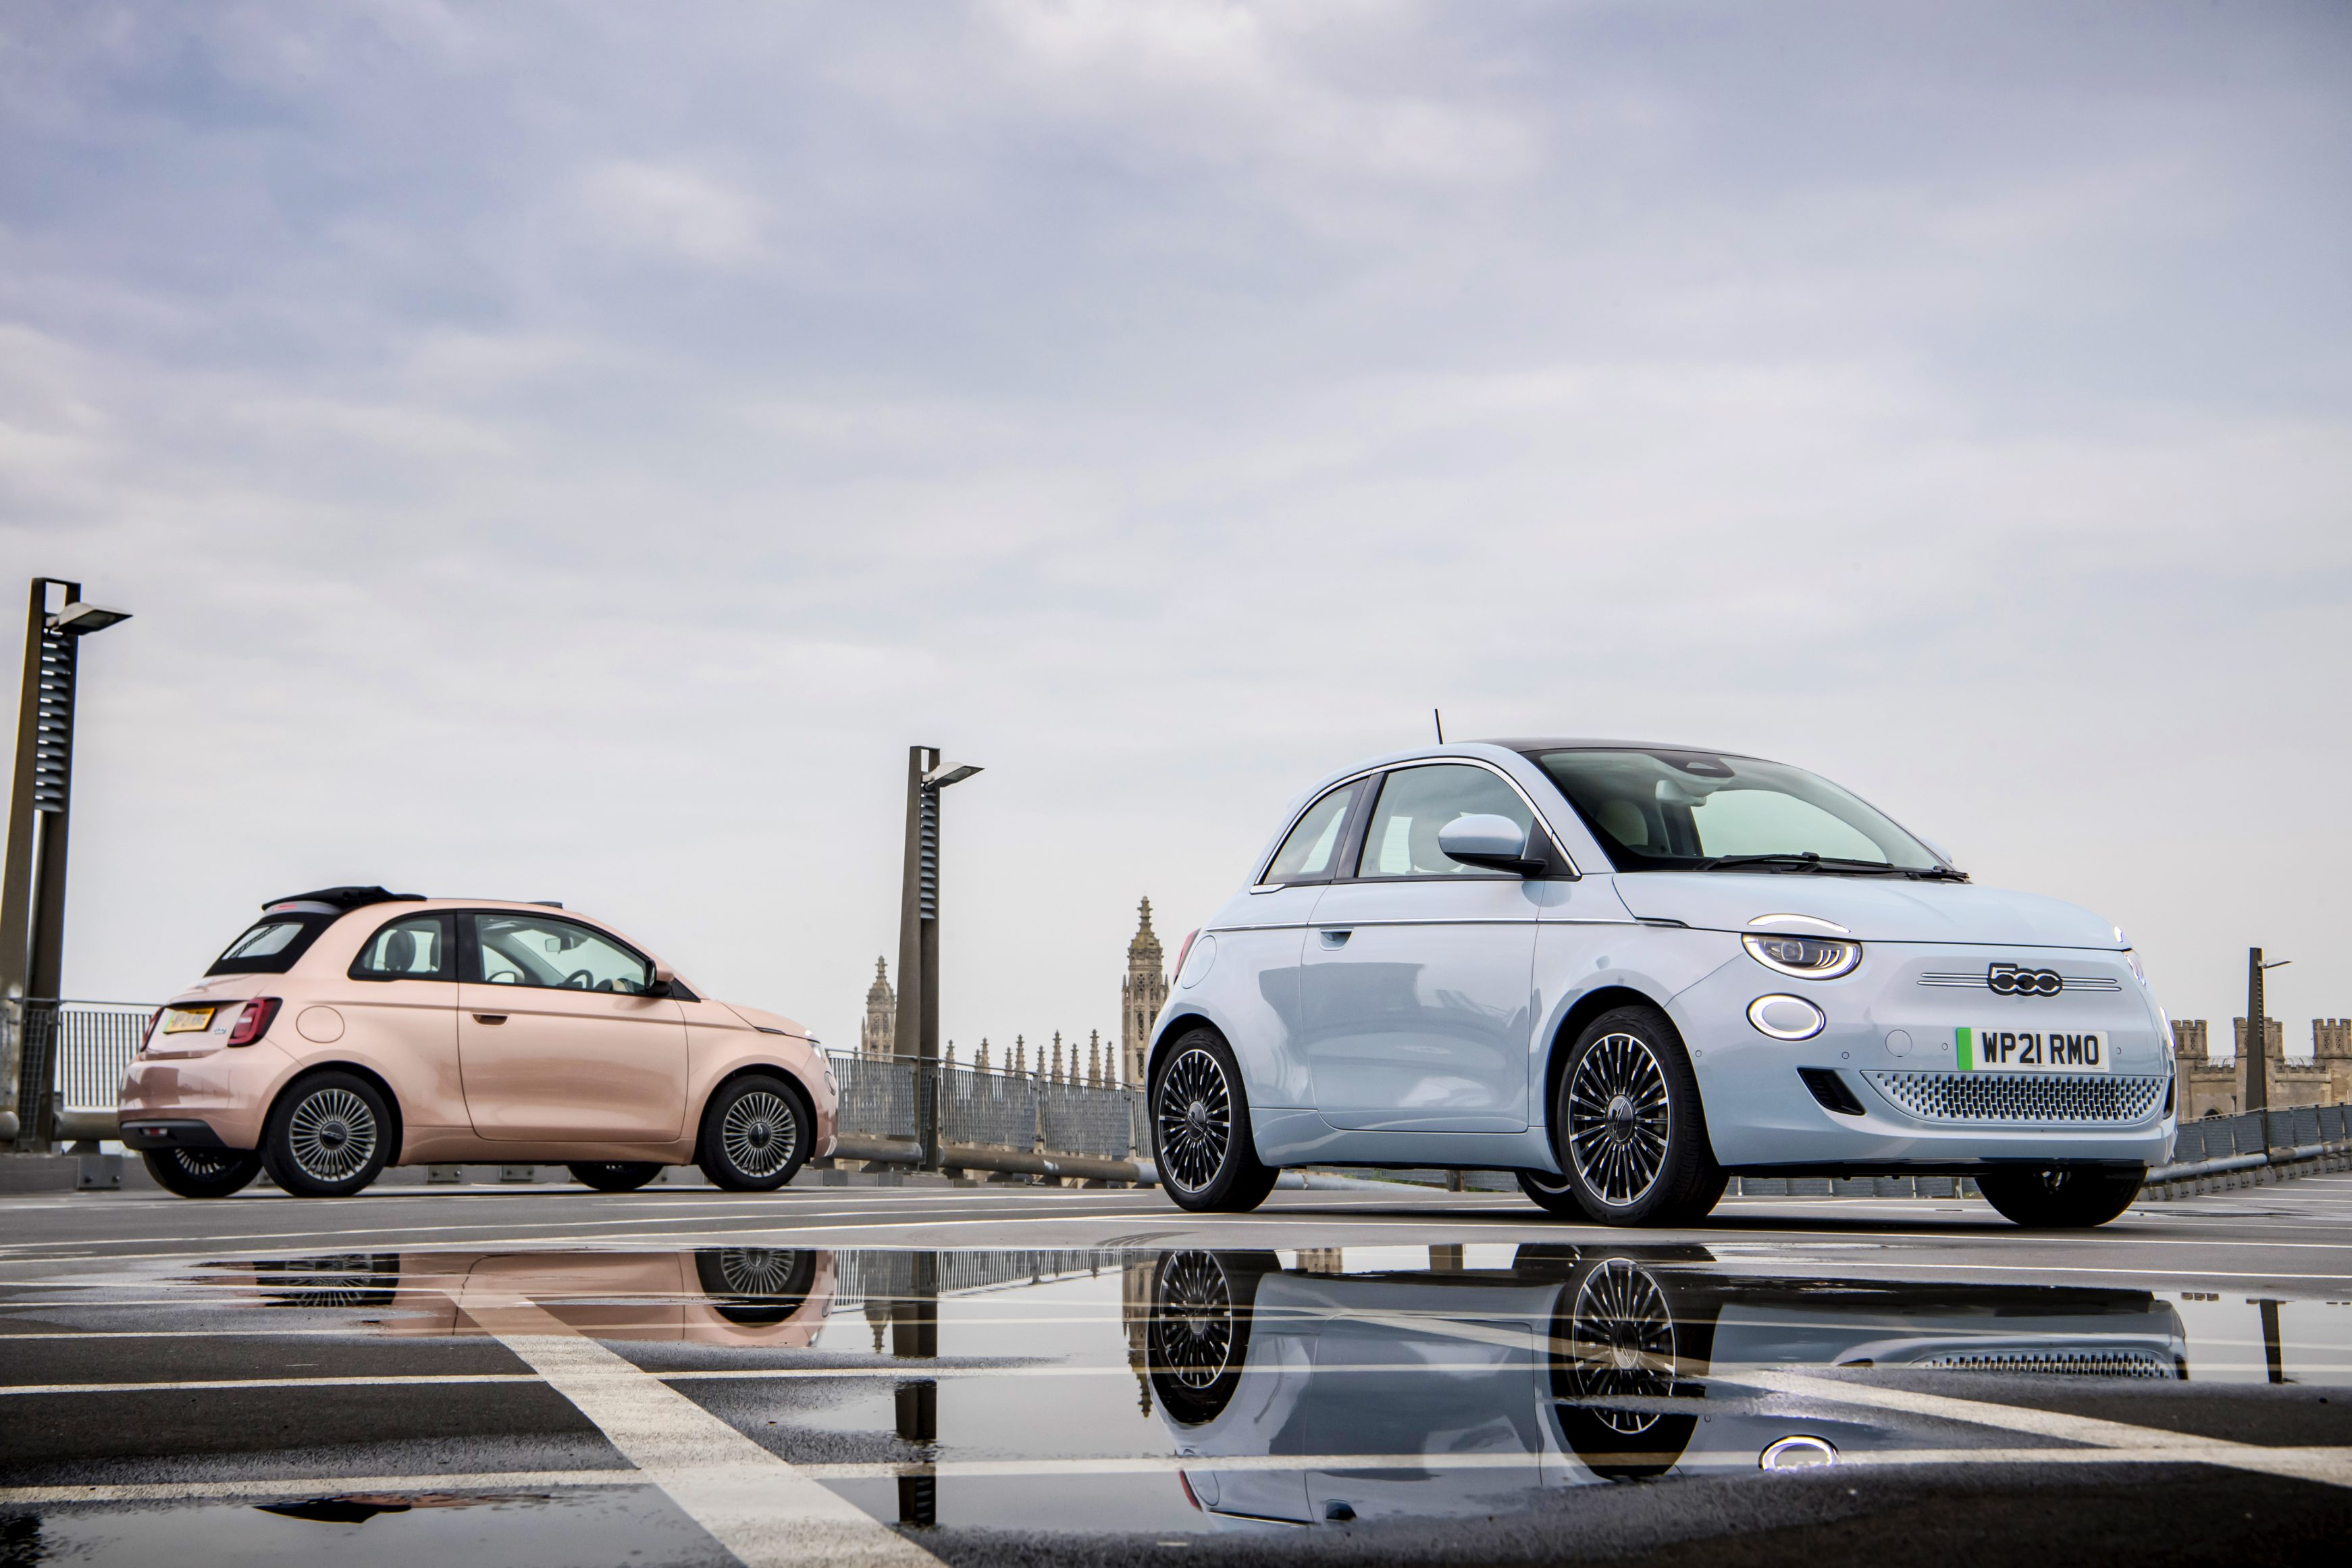 Best city cars - Fiat 500 electric and Cabrio